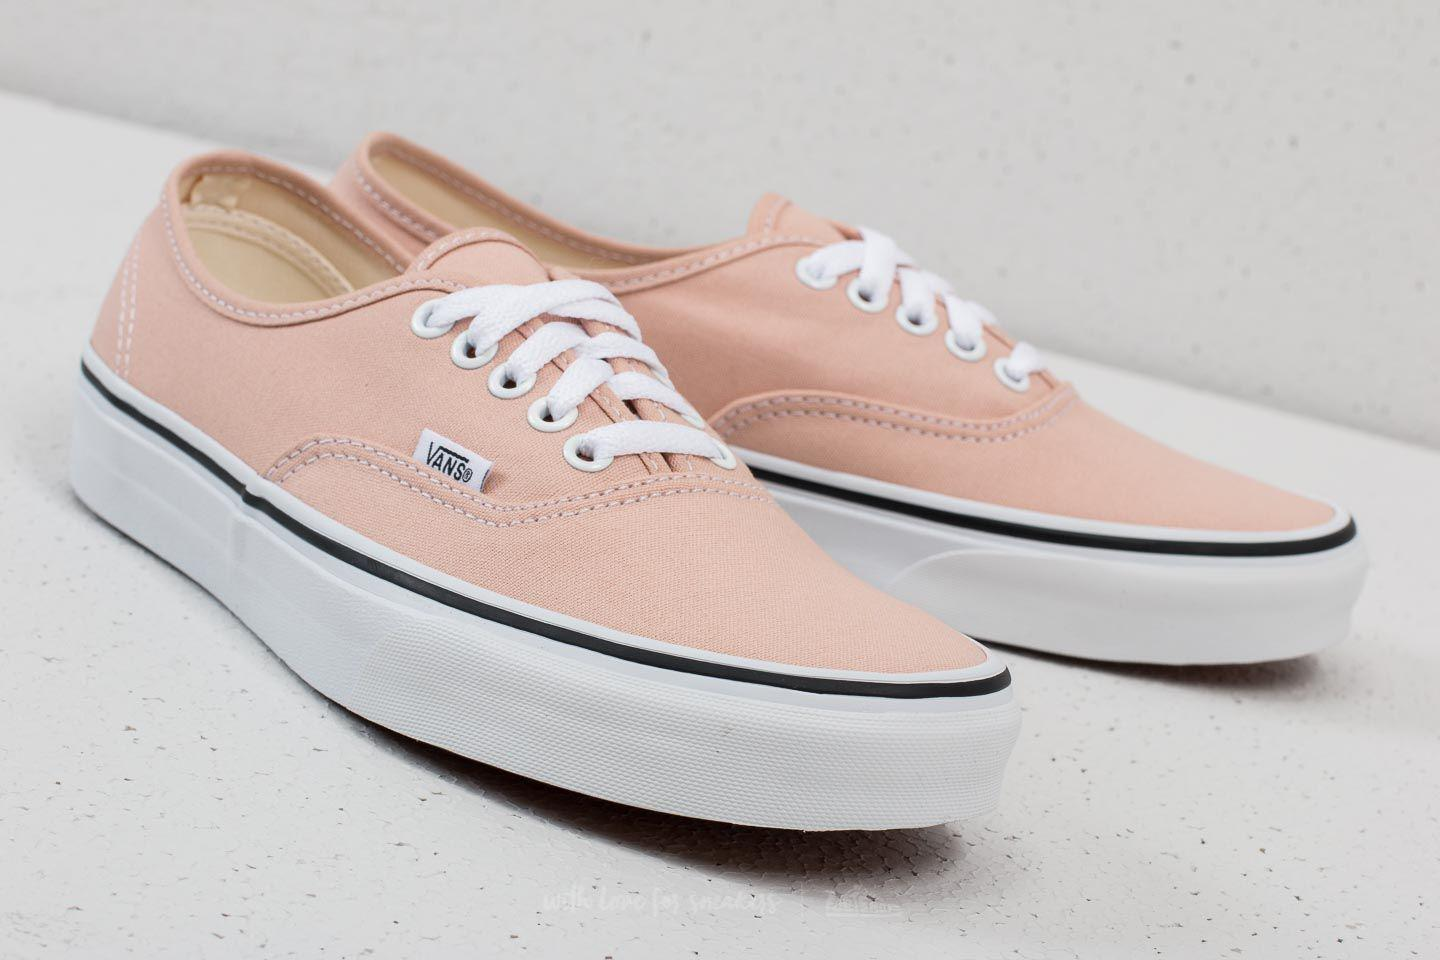 fd89d2ed05 Lyst - Vans Authentic Frappe  True White in White for Men